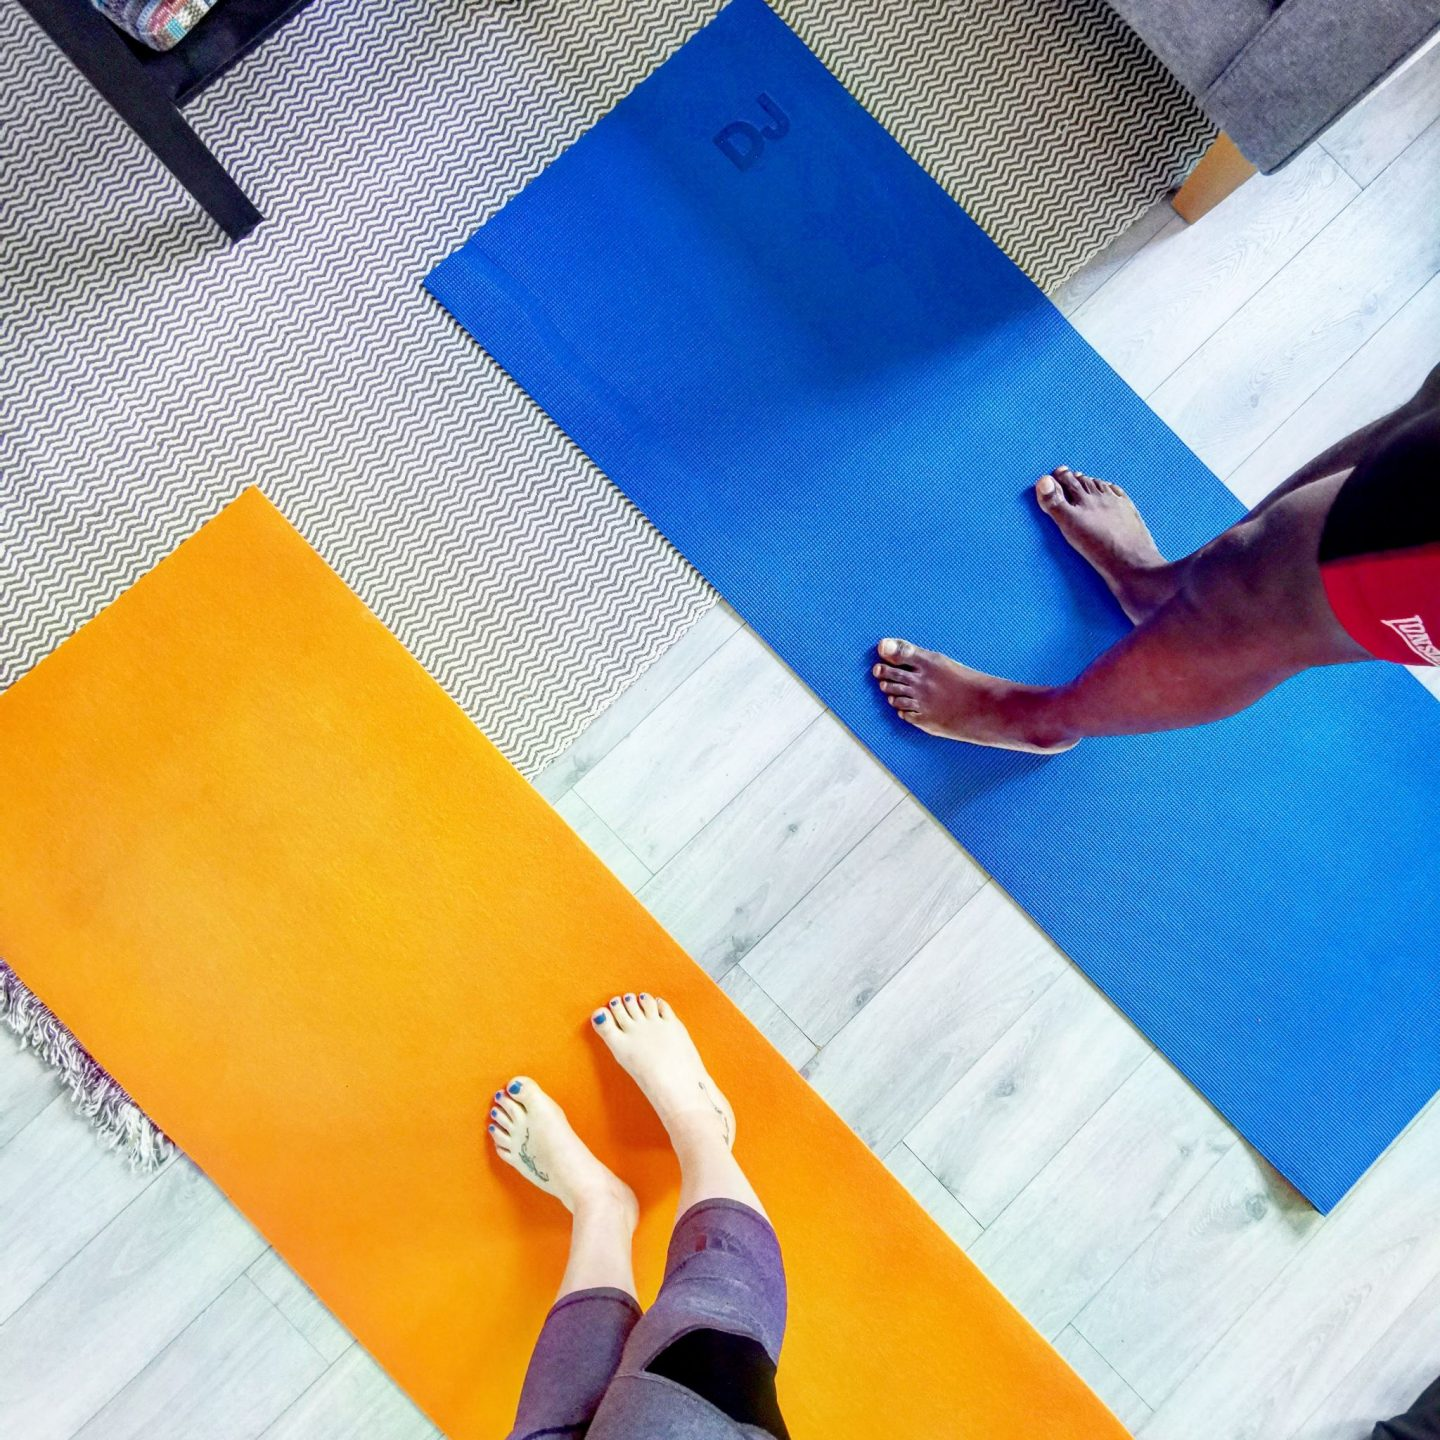 Two people standing on fitenss mats ready for home workouts